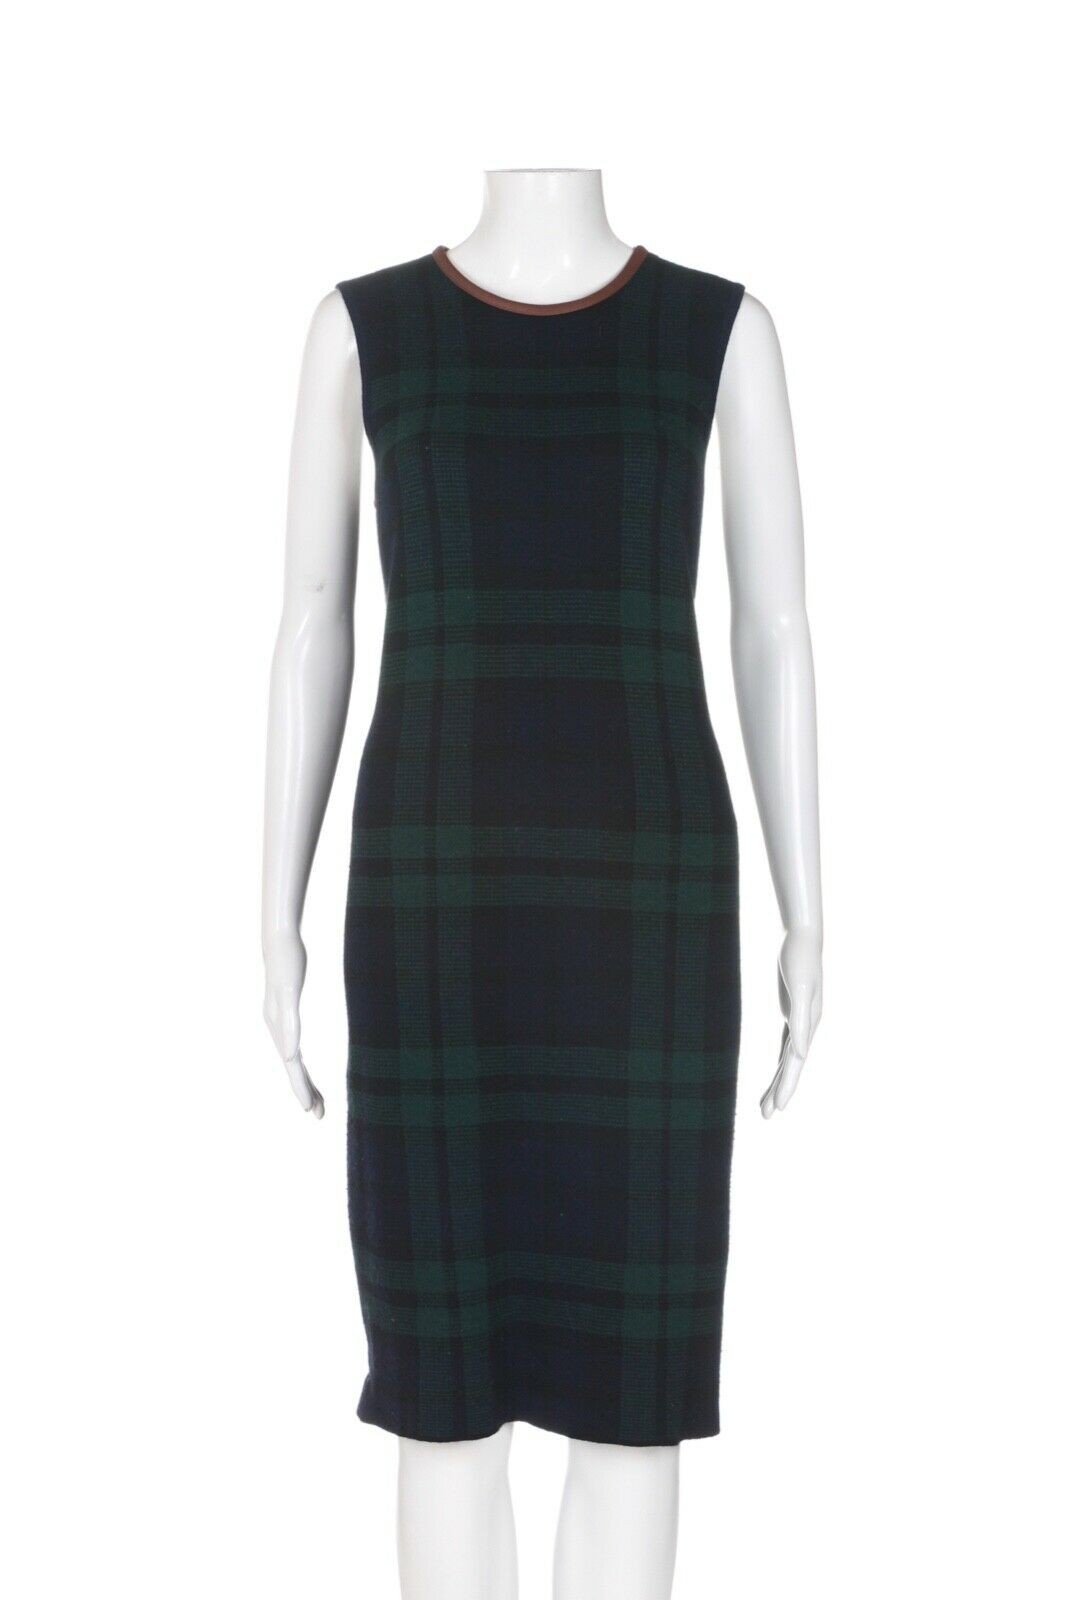 LAUREN RALPH LAUREN Blackwatch Tartan Plaid Dress